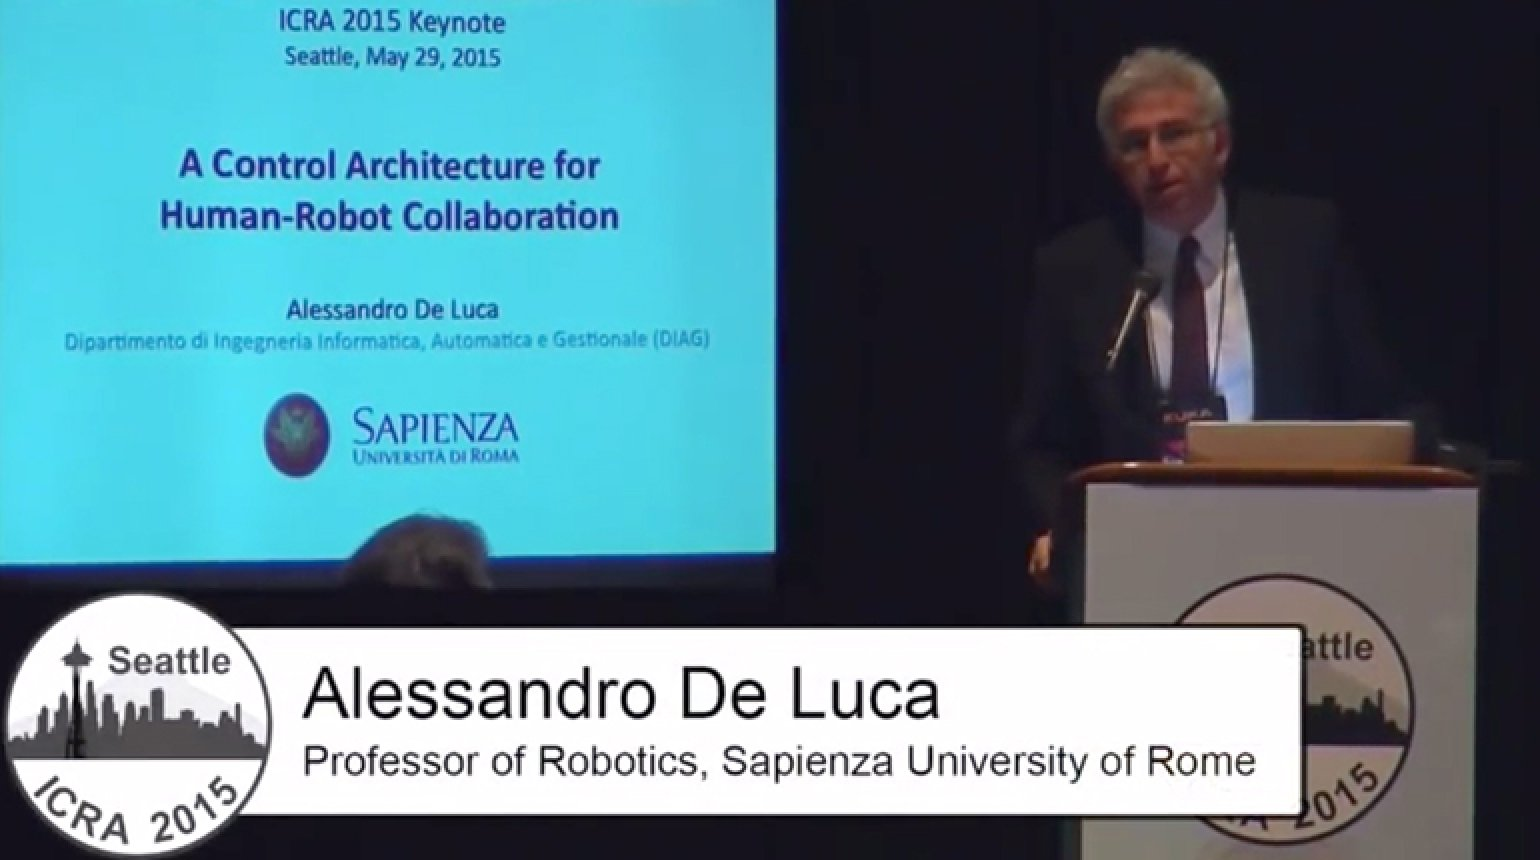 A Control Architecture for Human-Robot Collaboration Video